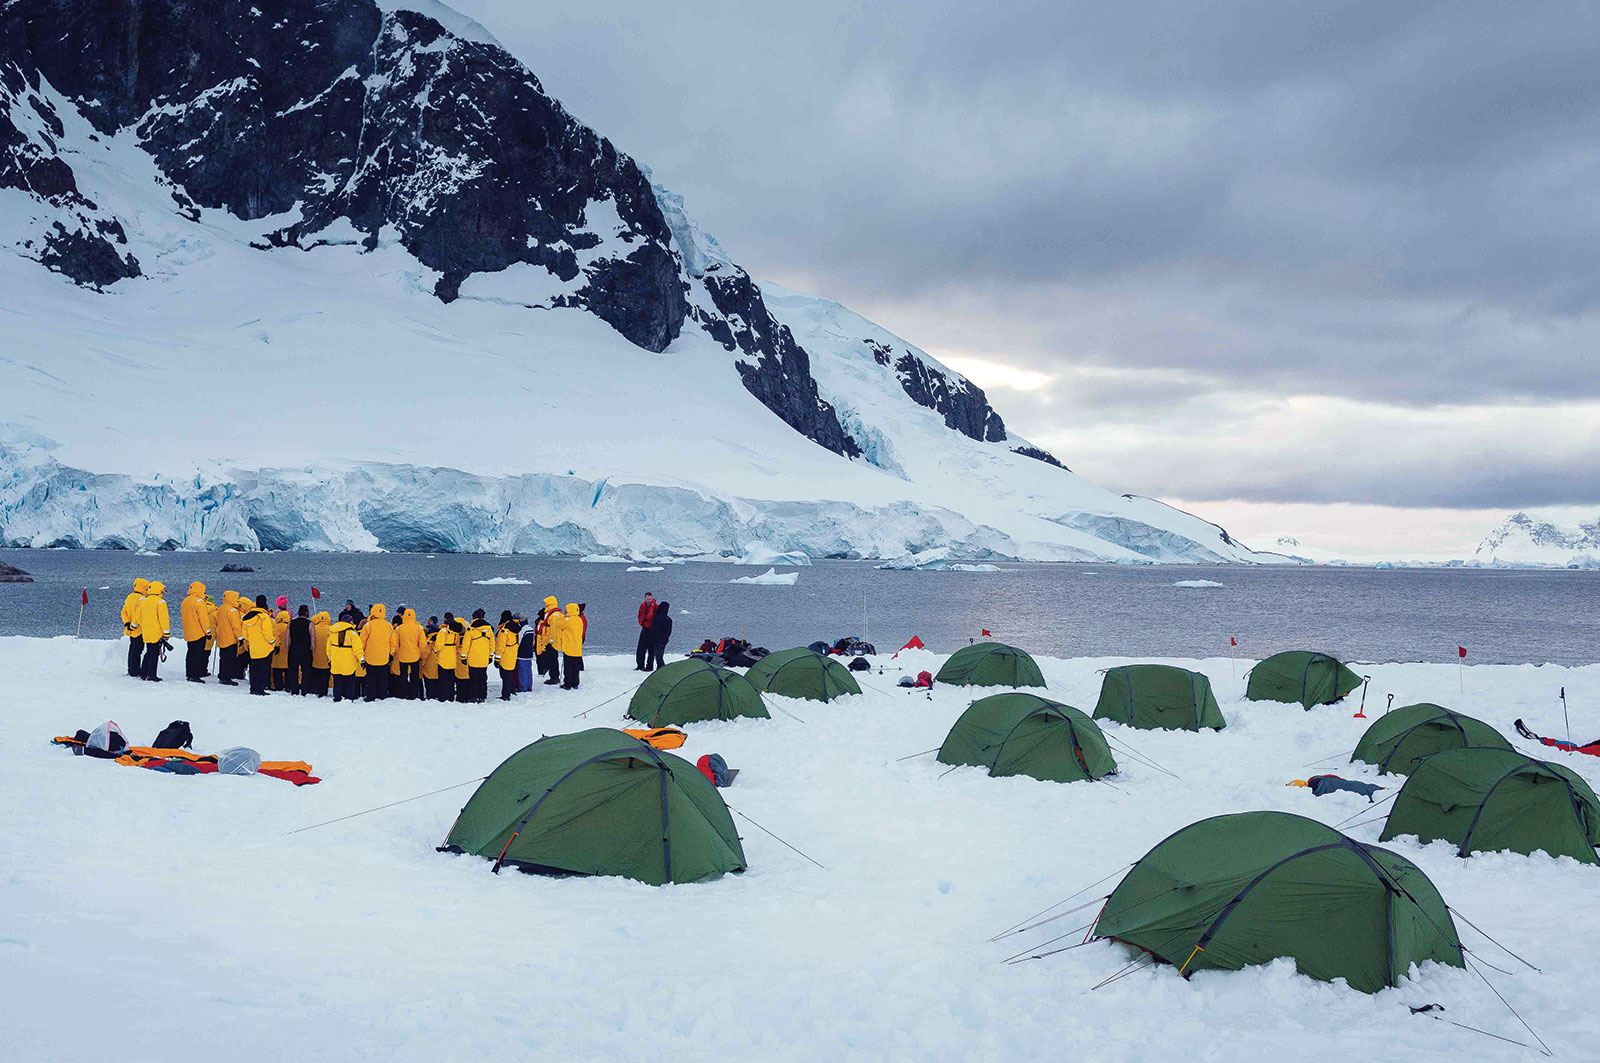 Campers get ready for a night sleeping under the Antarctic sky.